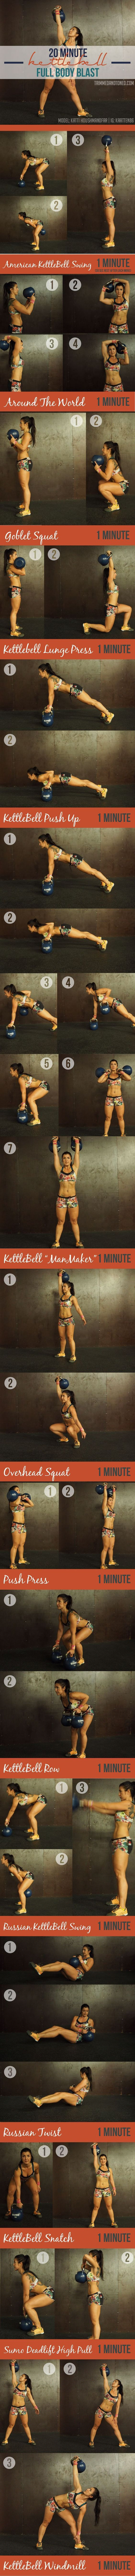 20 Minute Full Body Fat Loss Kettlebell Workout Circuit! Find more like this at gympins.com: